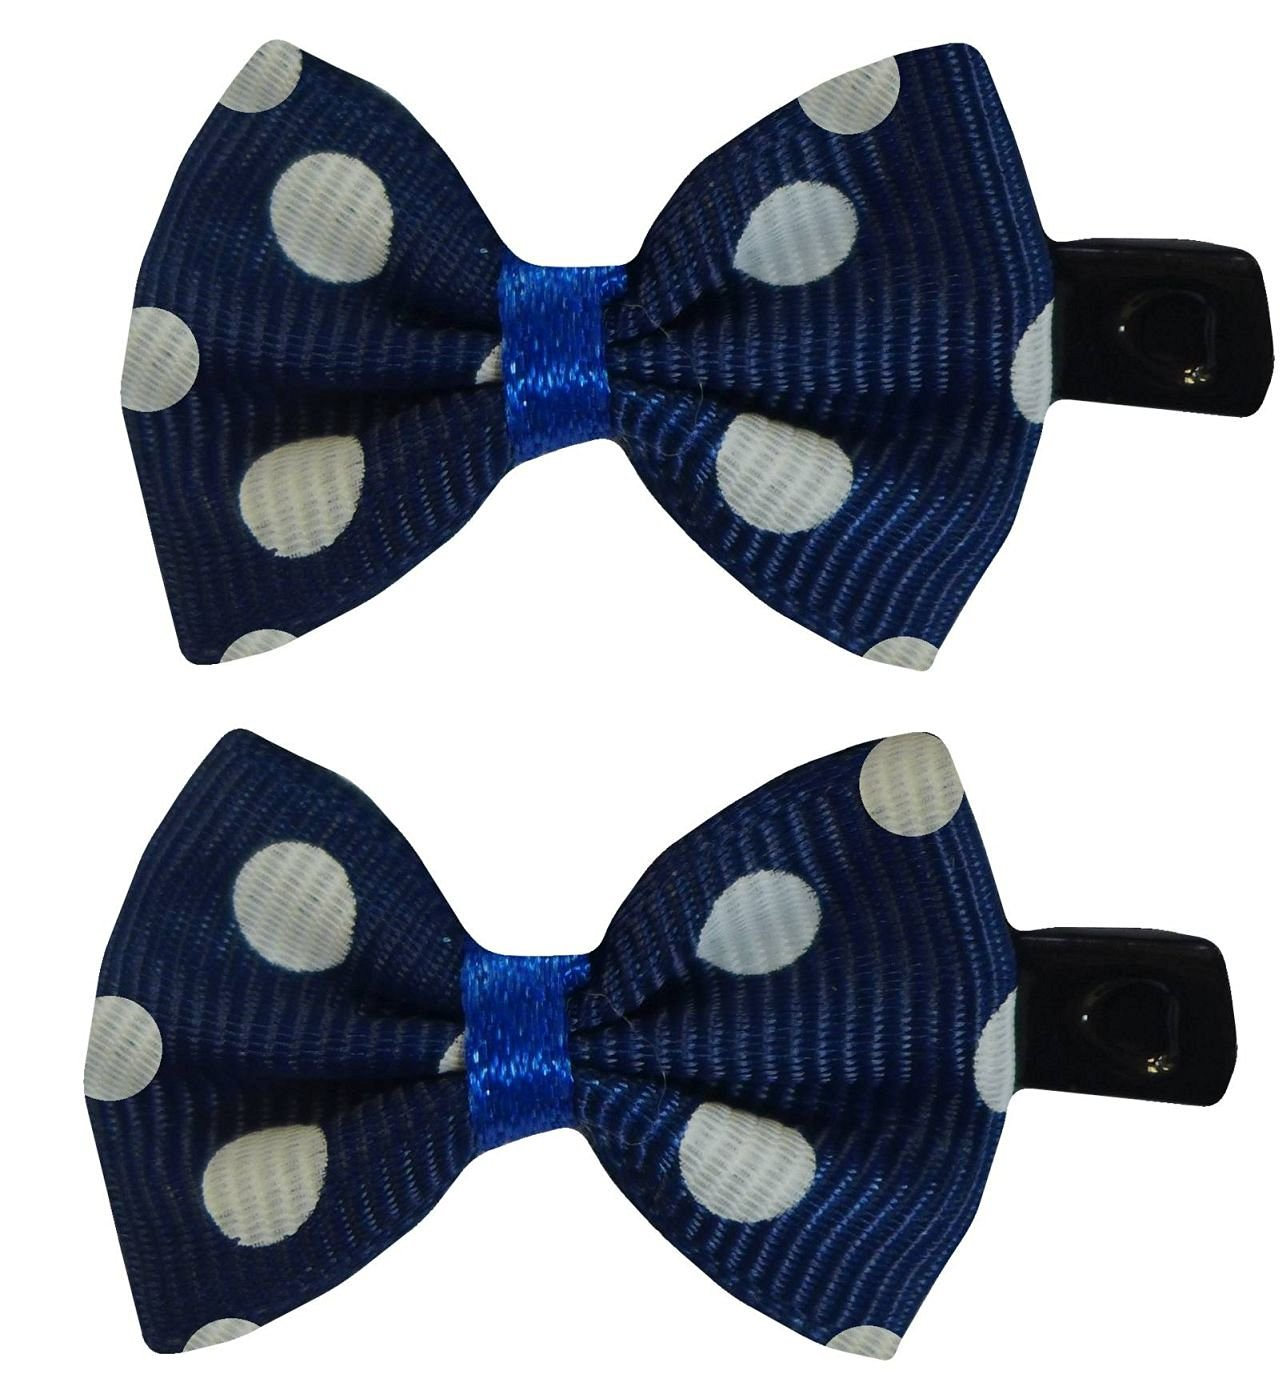 Two Stylish Summer Spotty Polka Dot Mini Bow Hair Clips 50s Pinup Vintage (Navy Blue & White)